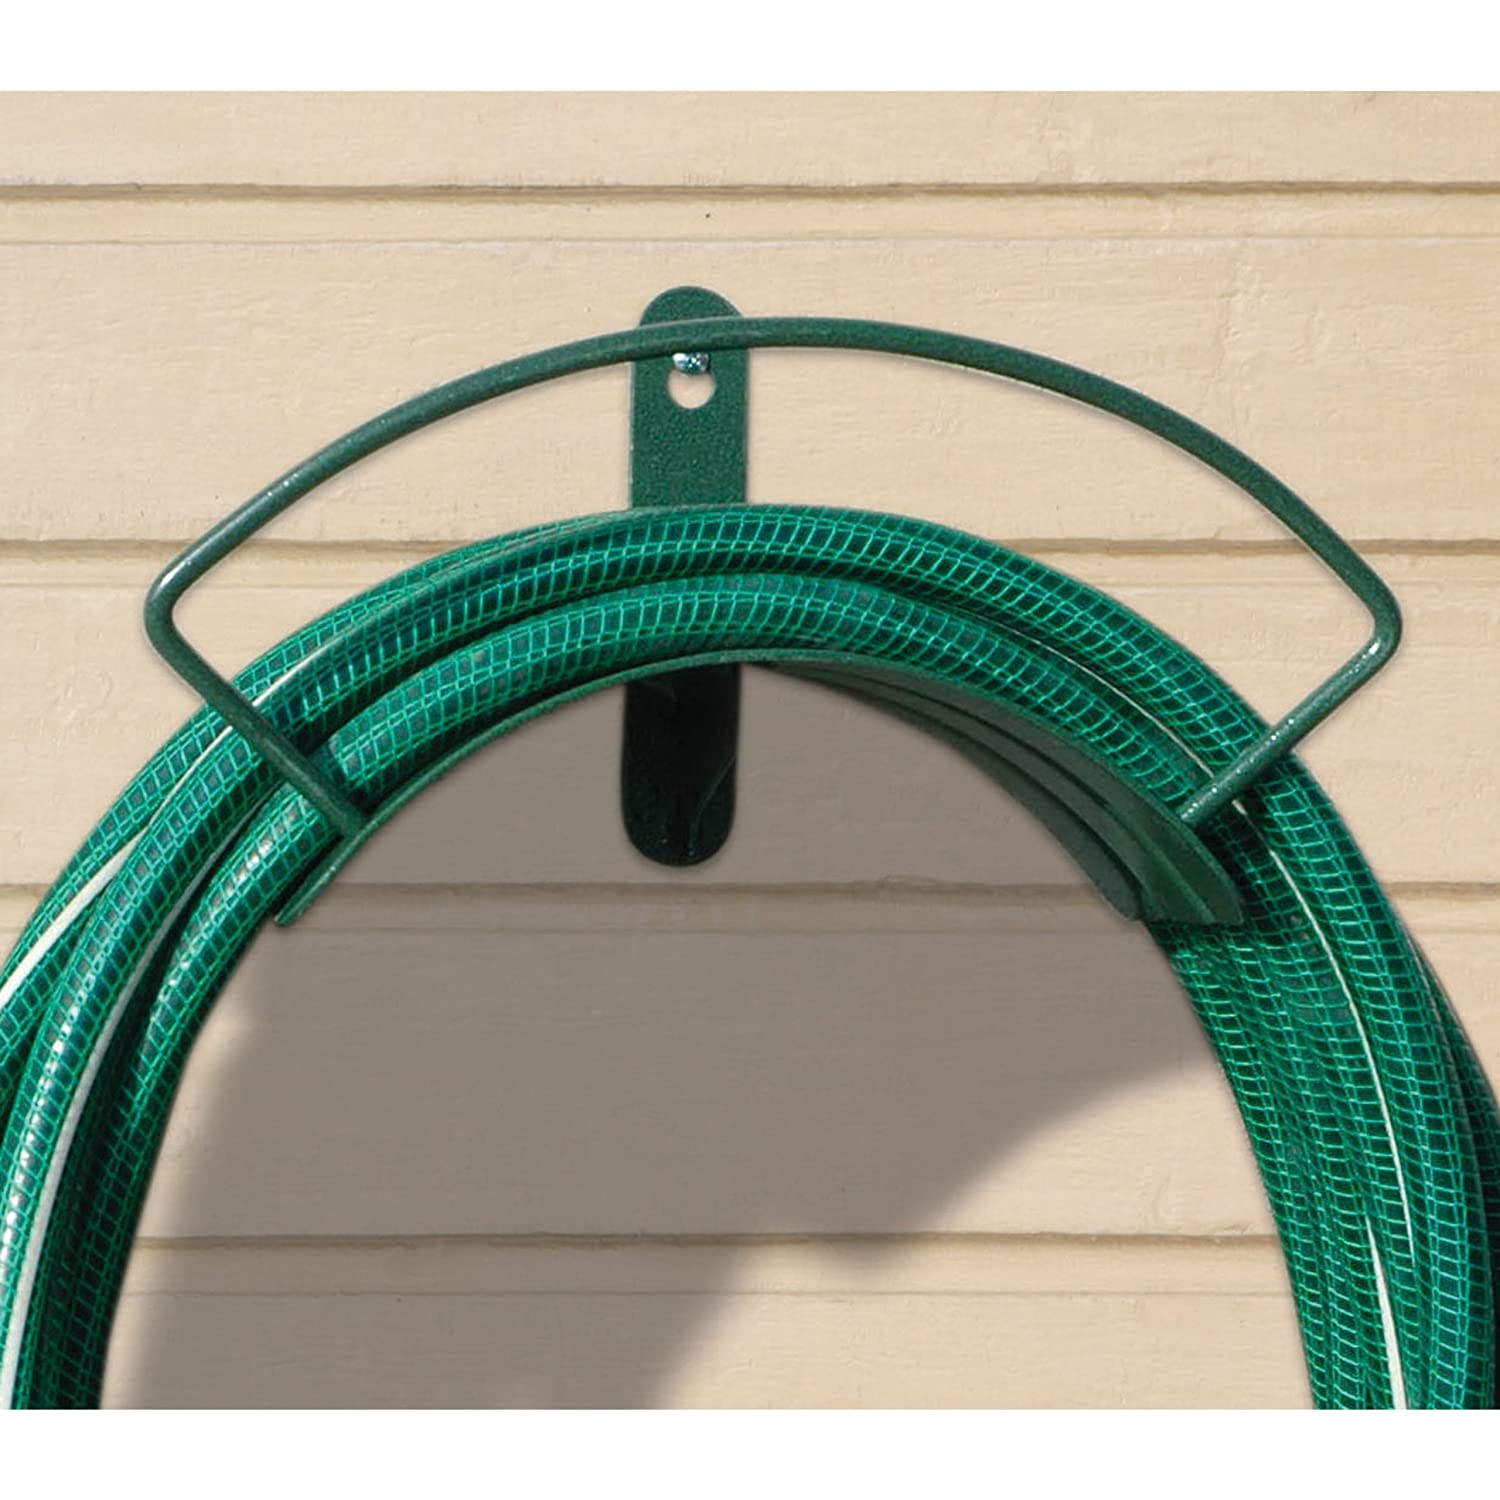 5 Best Garden Hose Hanger Reviews 2019 Complete Buying Guide